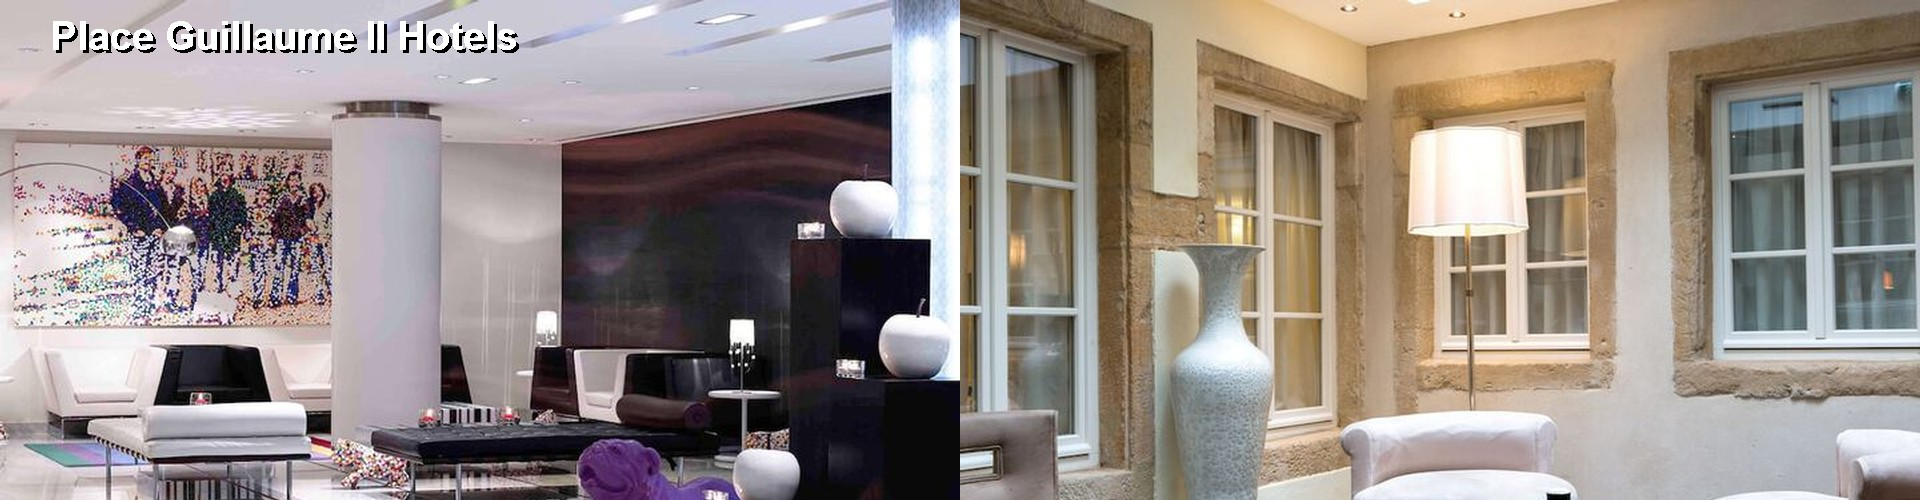 5 Best Hotels near Place Guillaume II